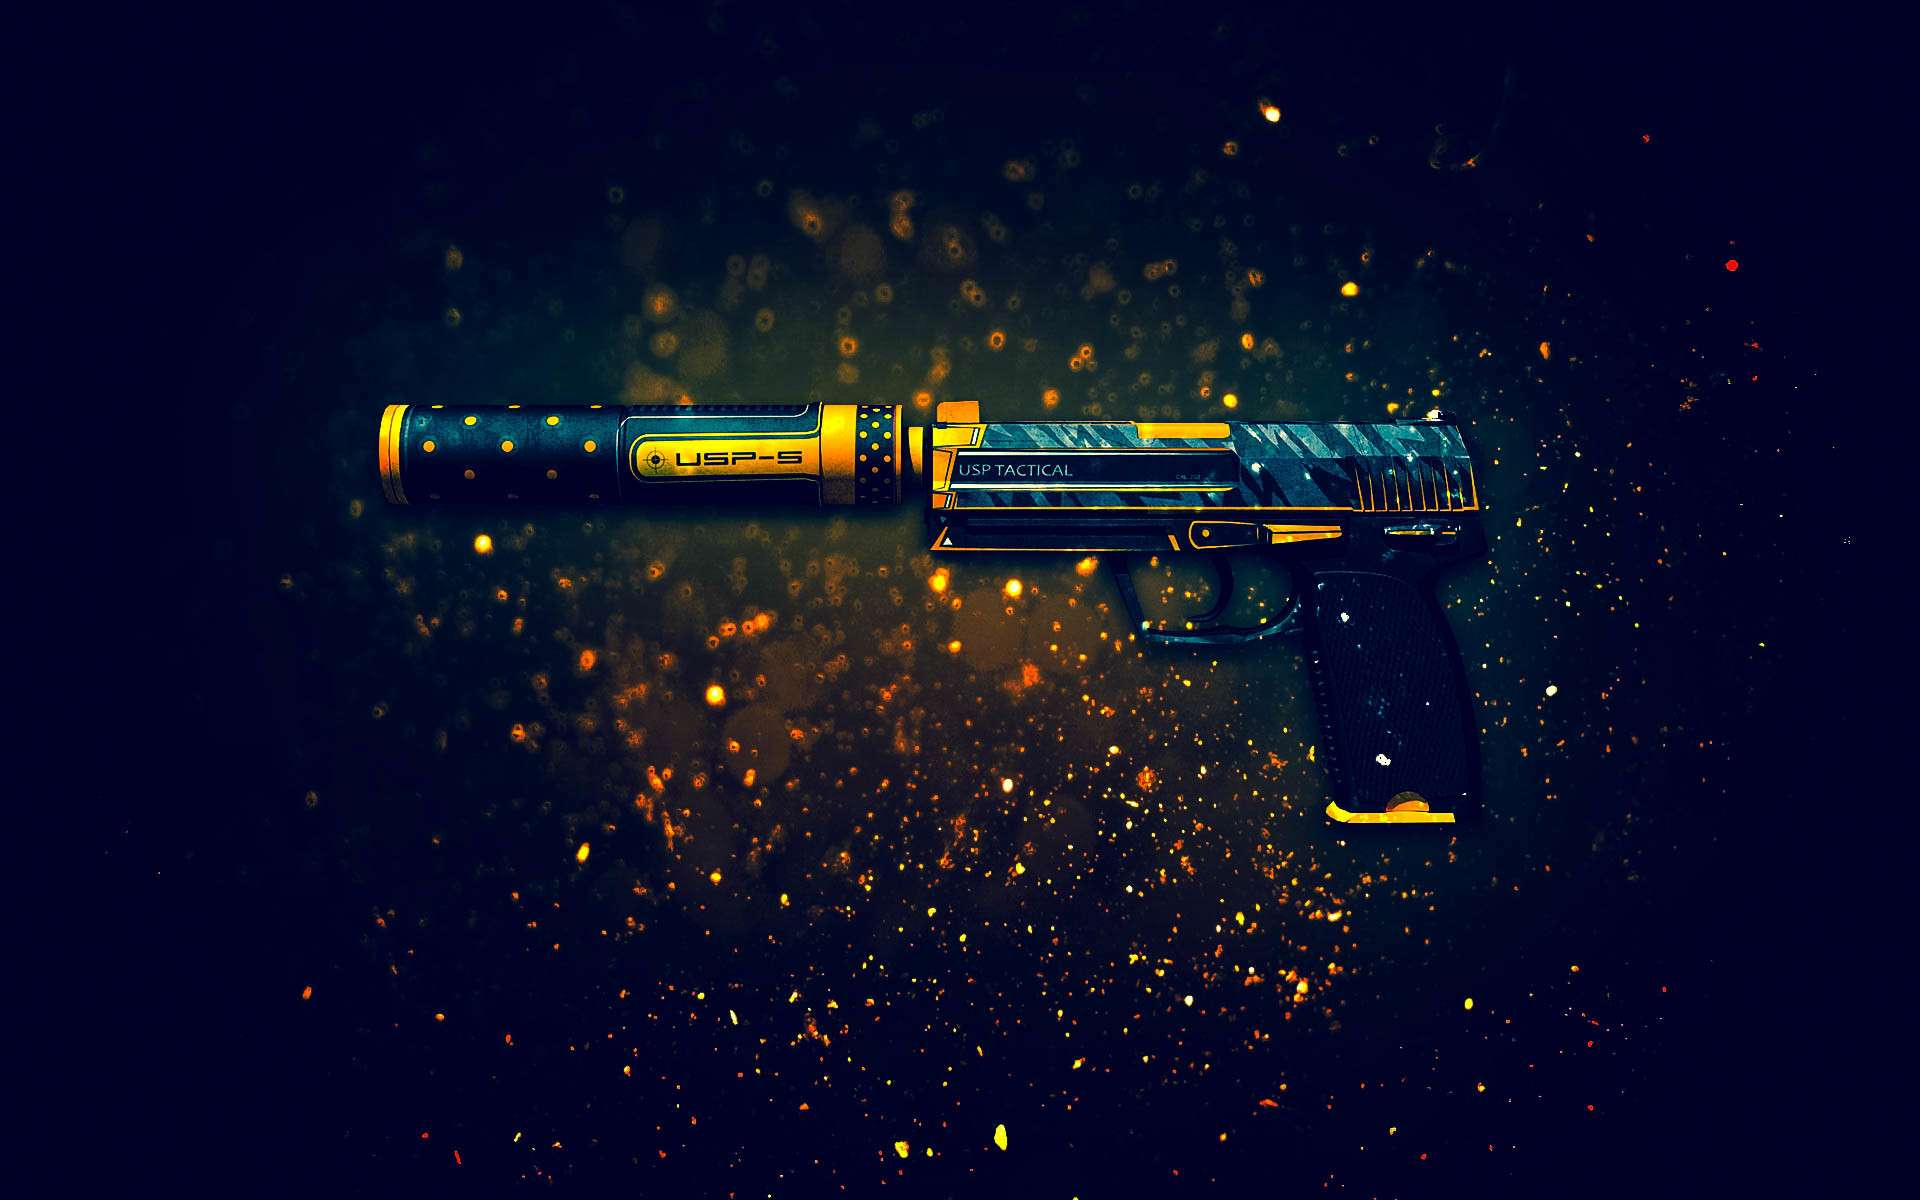 CS:GO Weapon Skin Wallpapers on Behance   My CSGO collection   Pinterest    Weapons and Wallpaper